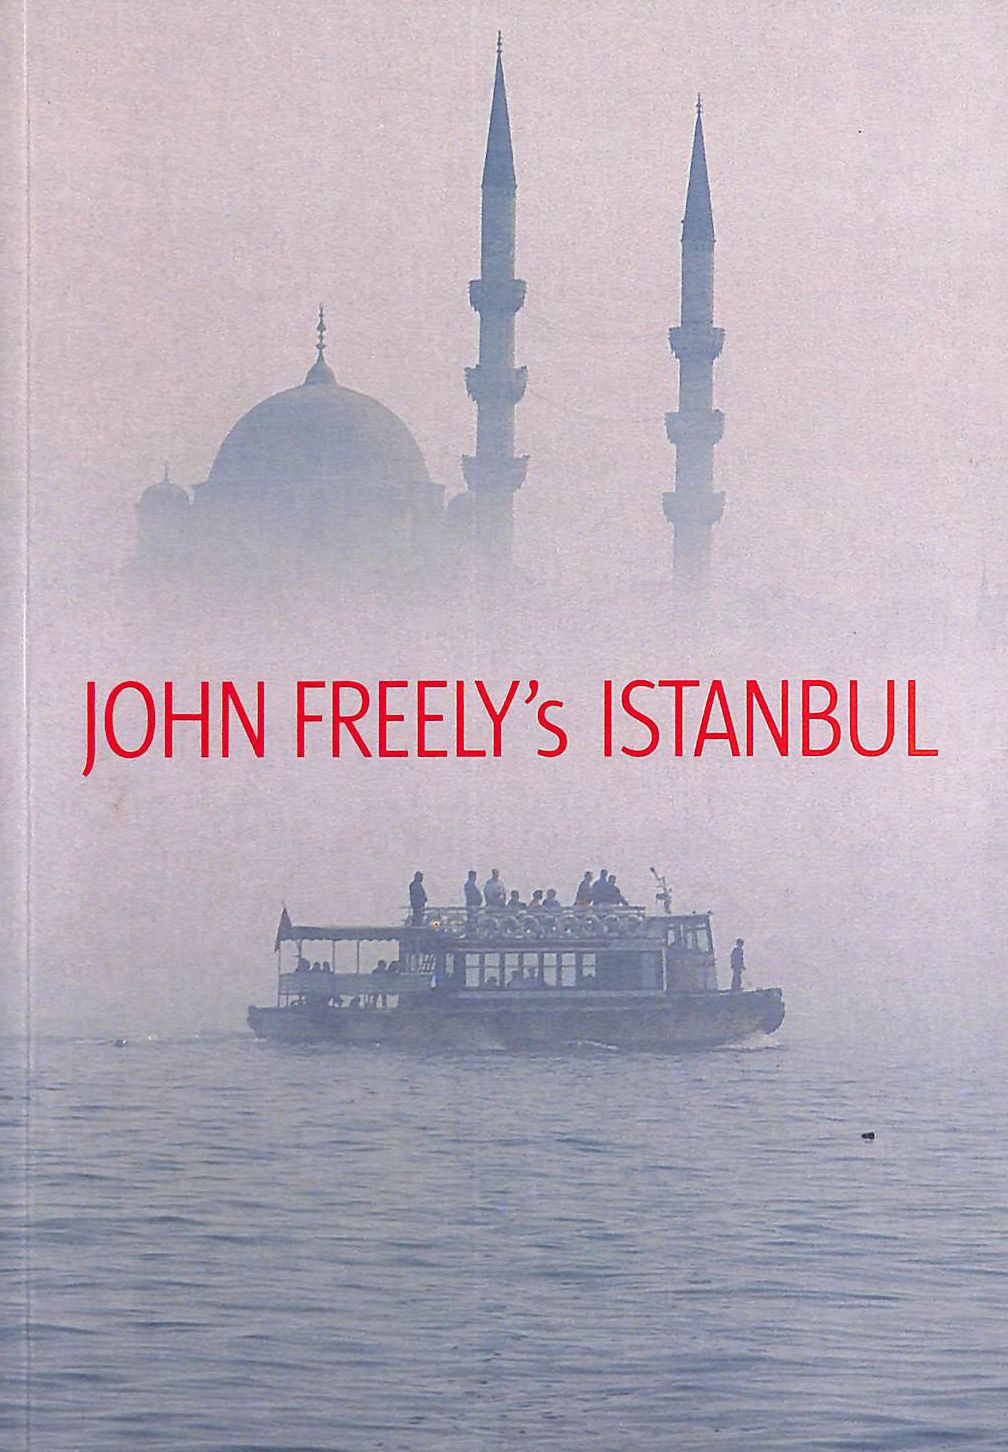 Image for John Freely's Istanbul: In Memory of Hilary Sumner-Boyd: Twenty-First Century Impressions